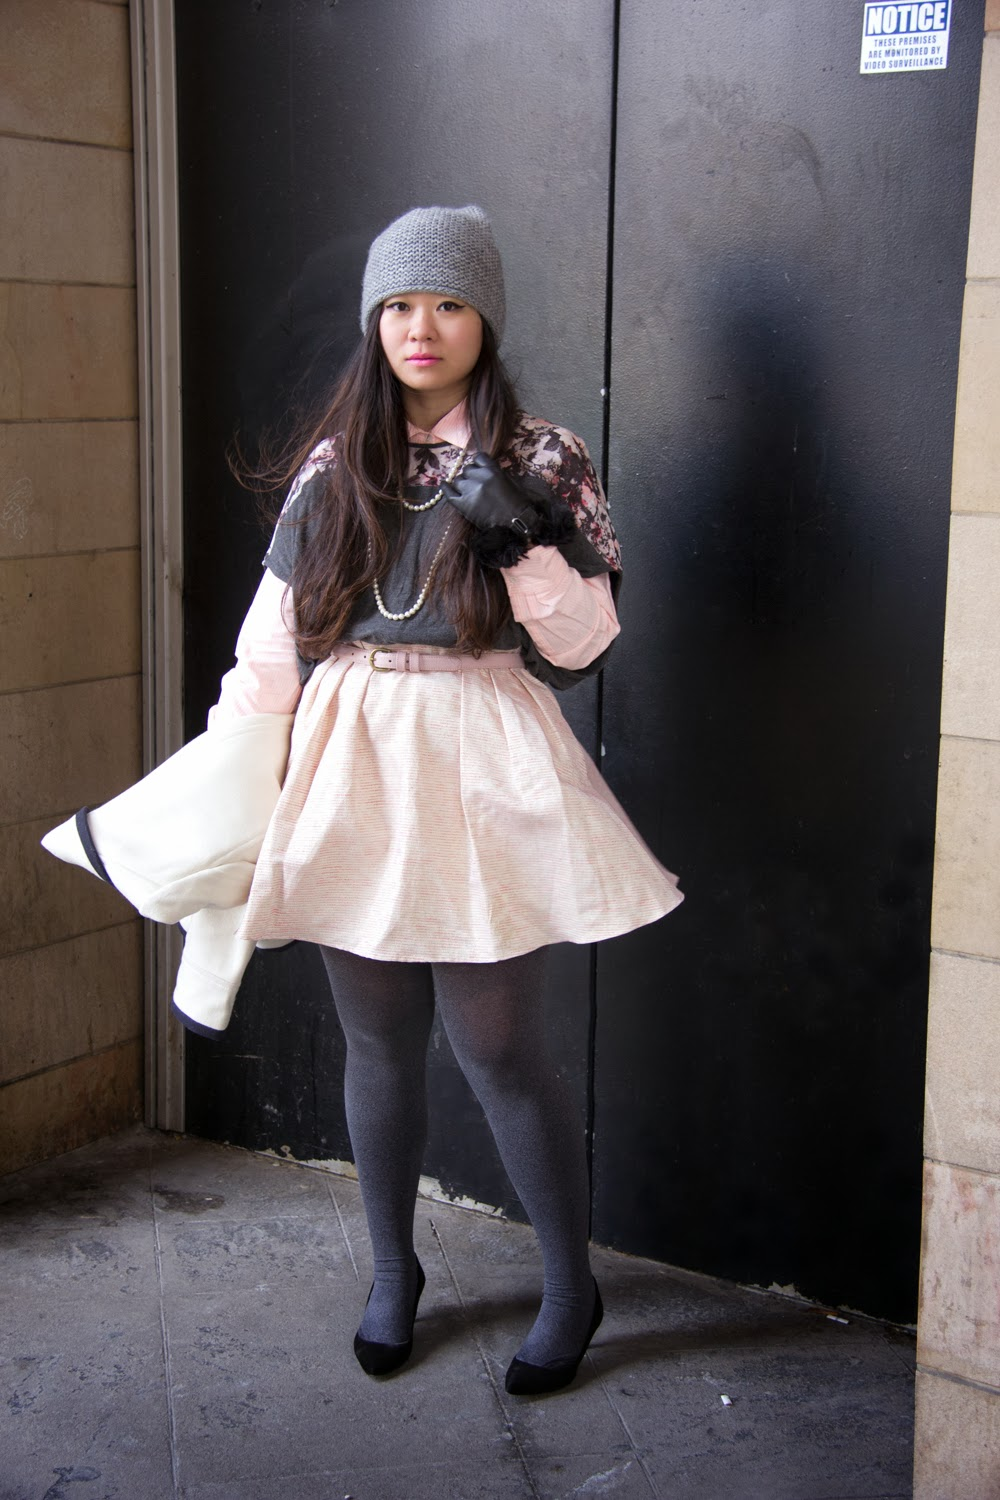 Pastel-Pink-Skater-Skirt, LeChateau-Gloves, Pearls-Necklace, Pink-Belt